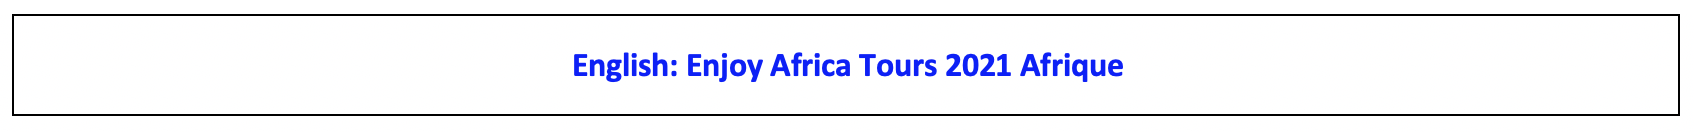 Enjoy Africa Tours English 2021